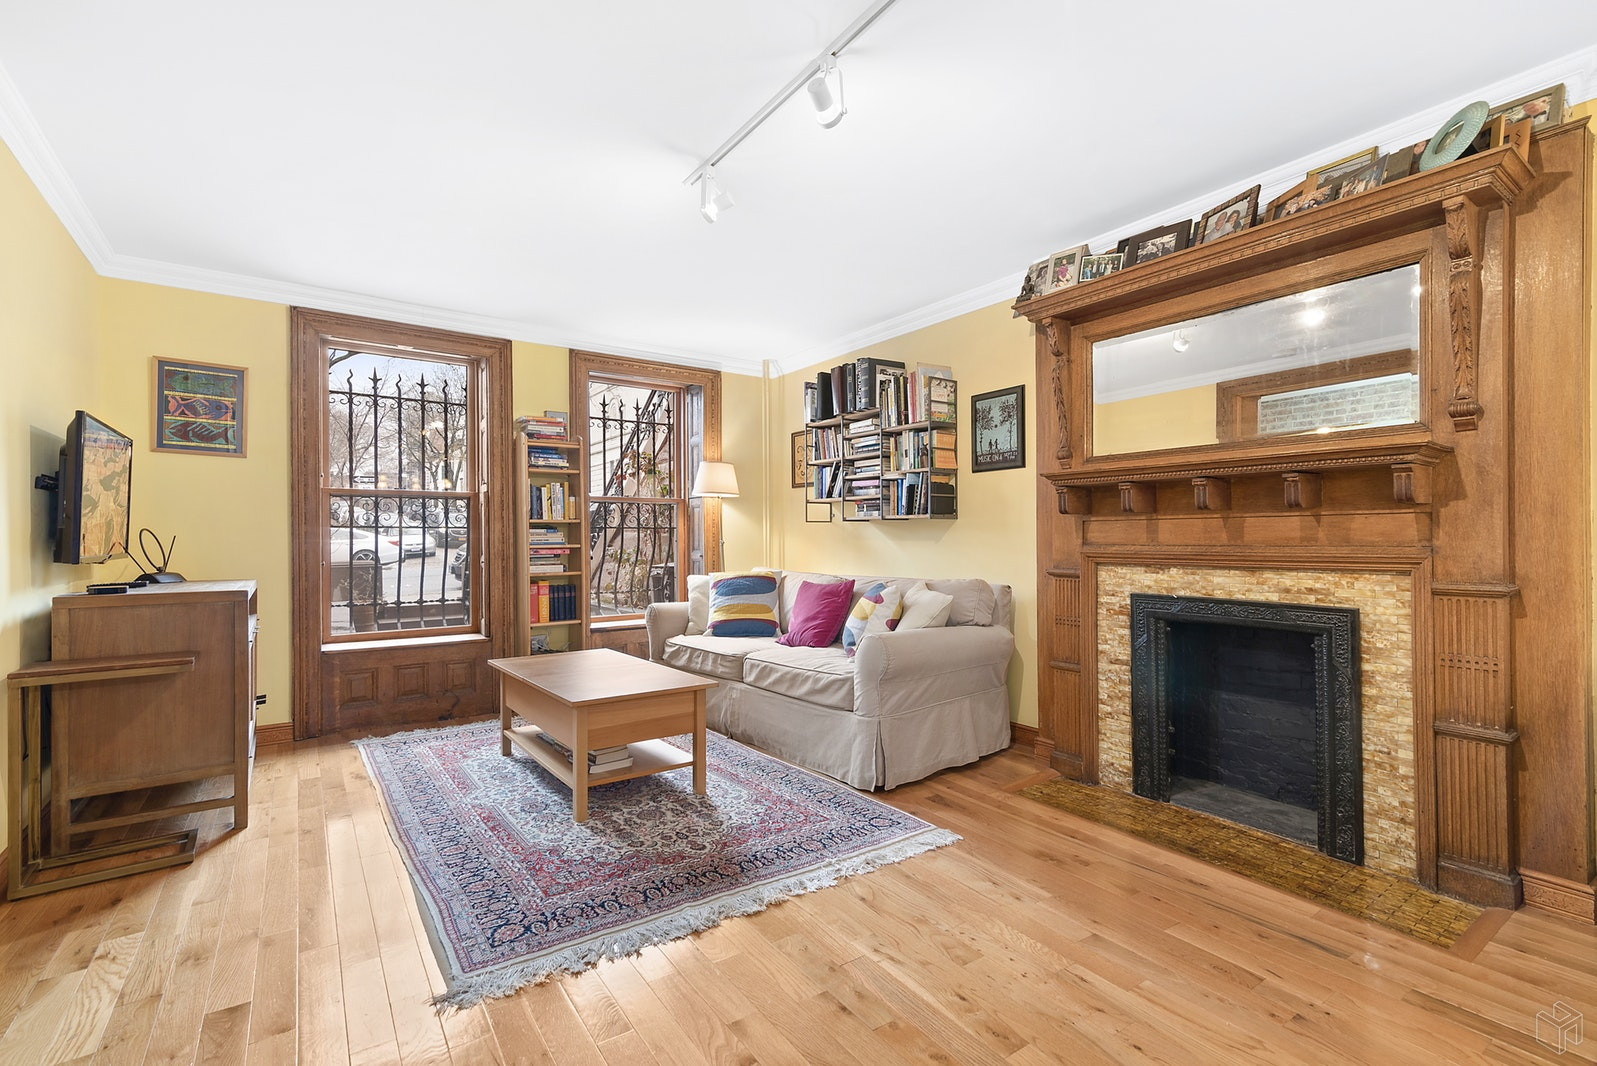 Illustrious Hamilton Heights Townhouse, Upper Manhattan, NYC, 10032, $2,795,000, Property For Sale, Halstead Real Estate, Photo 12